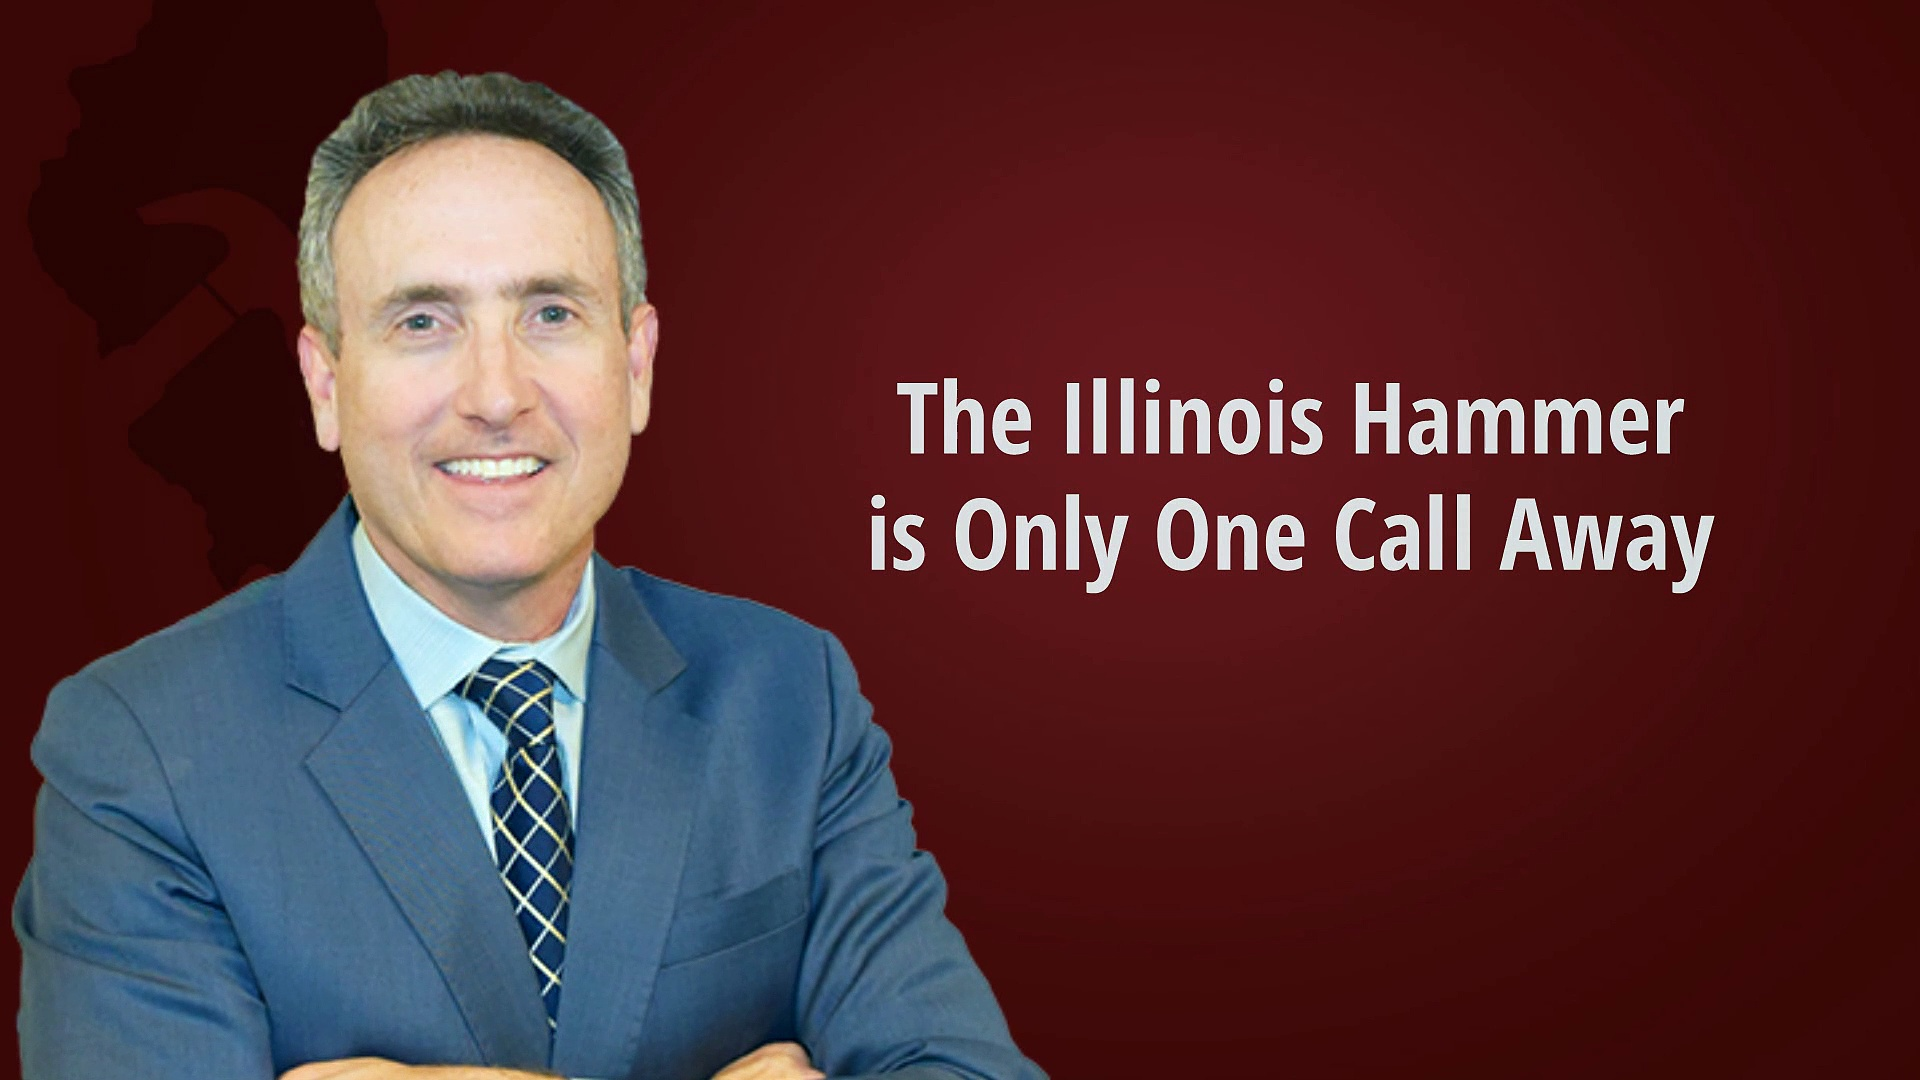 Best Personal Injury Lawyer At Illinois Hammer Injury Law Firm